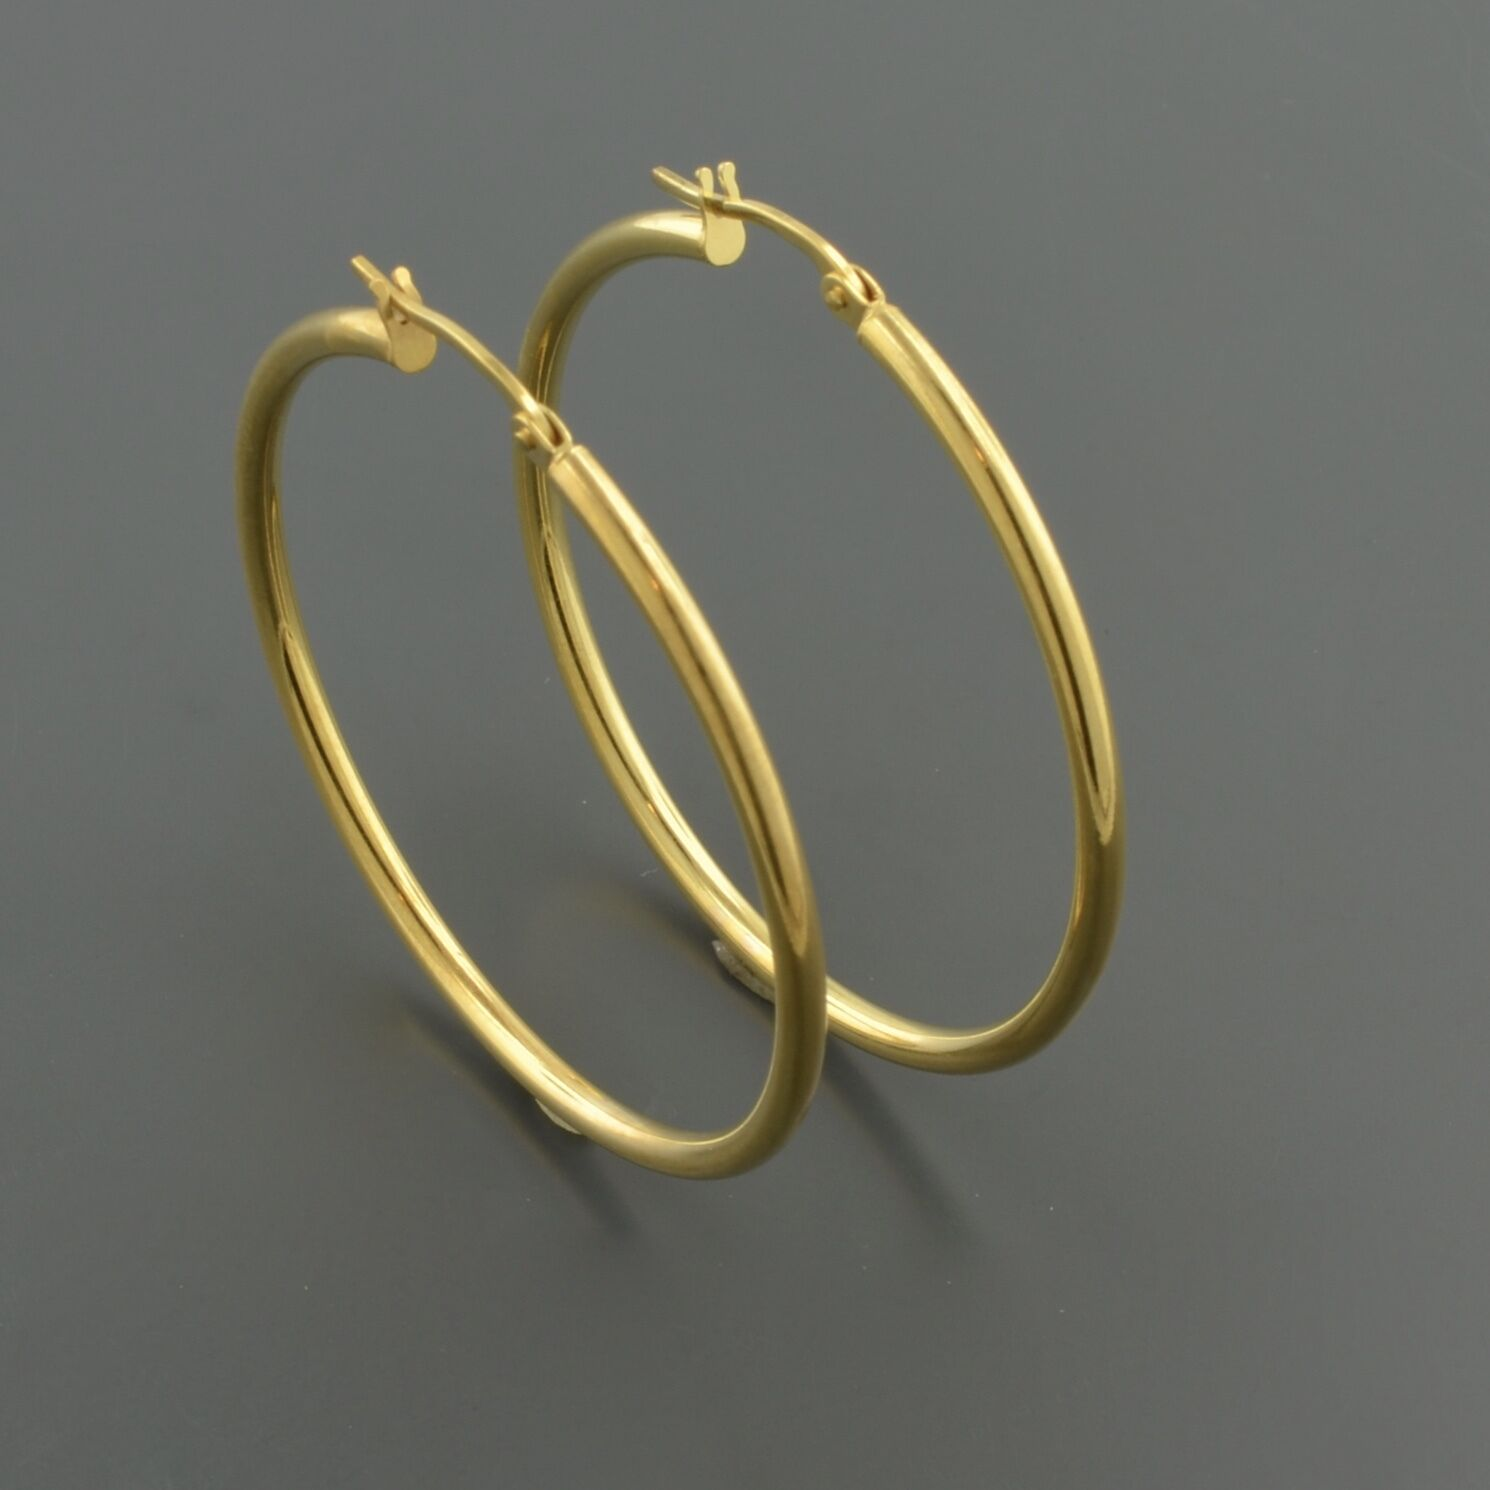 14K YELLOW gold 2X35MM HIGH POLISHED HOOP EARRINGS